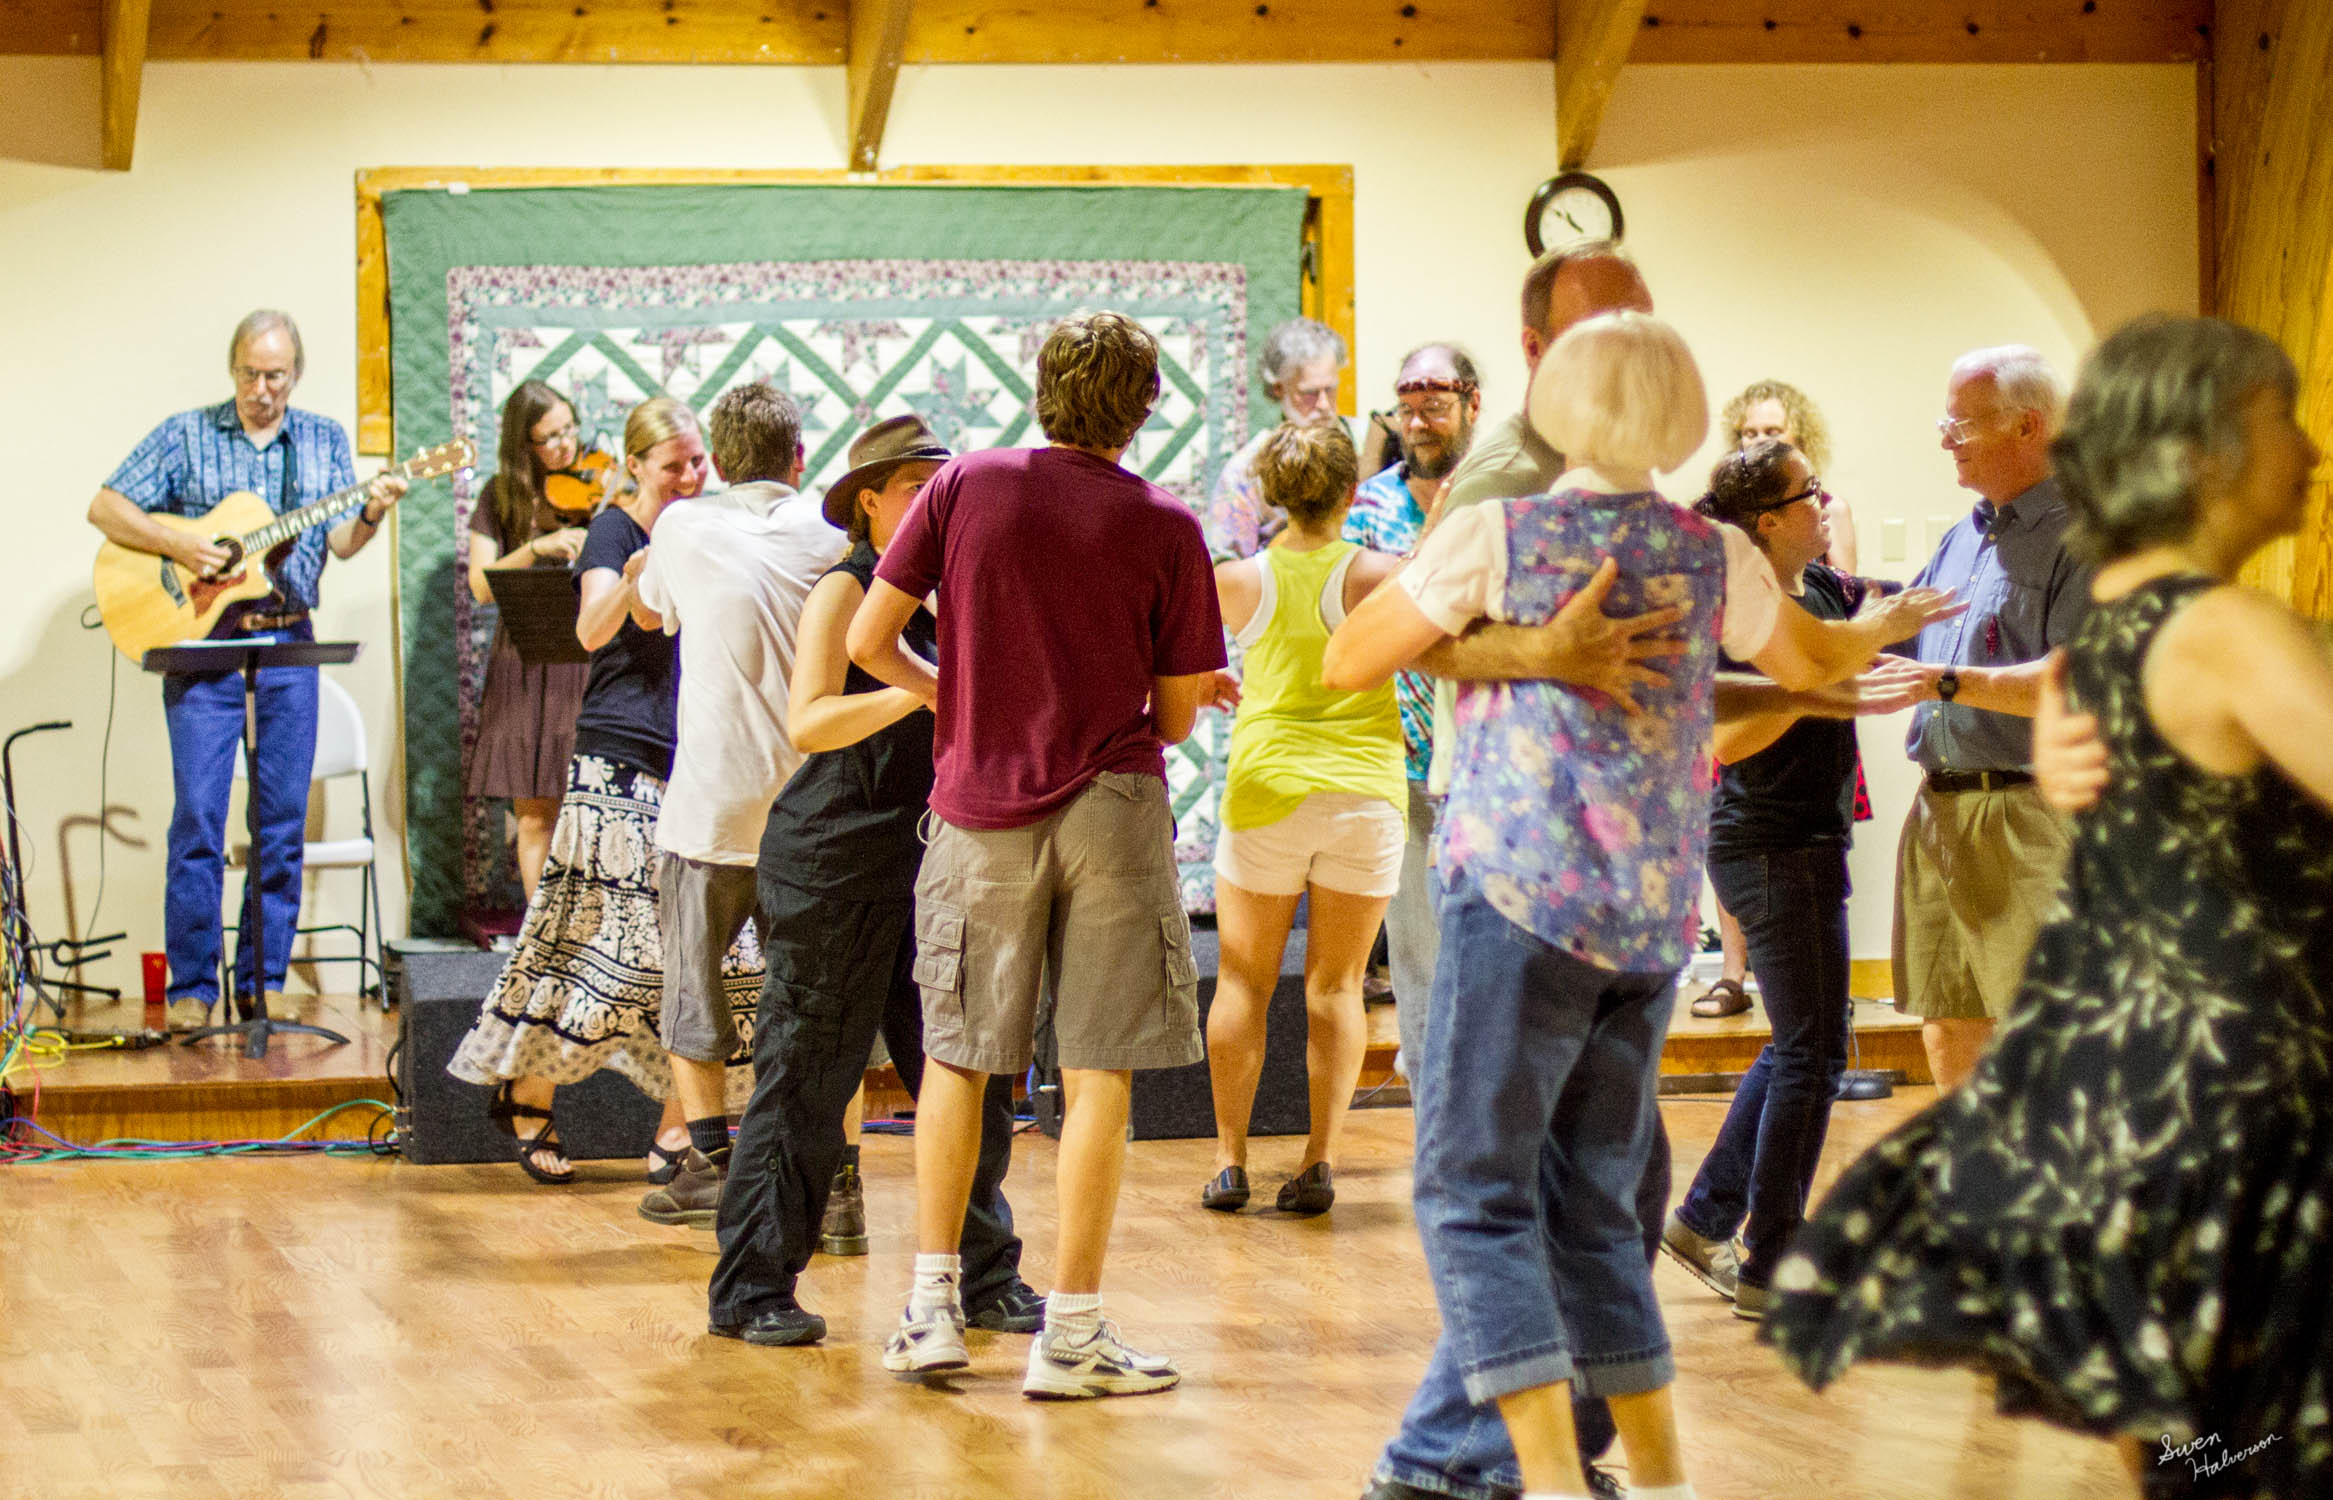 Contra dancing in Berea-053.jpg